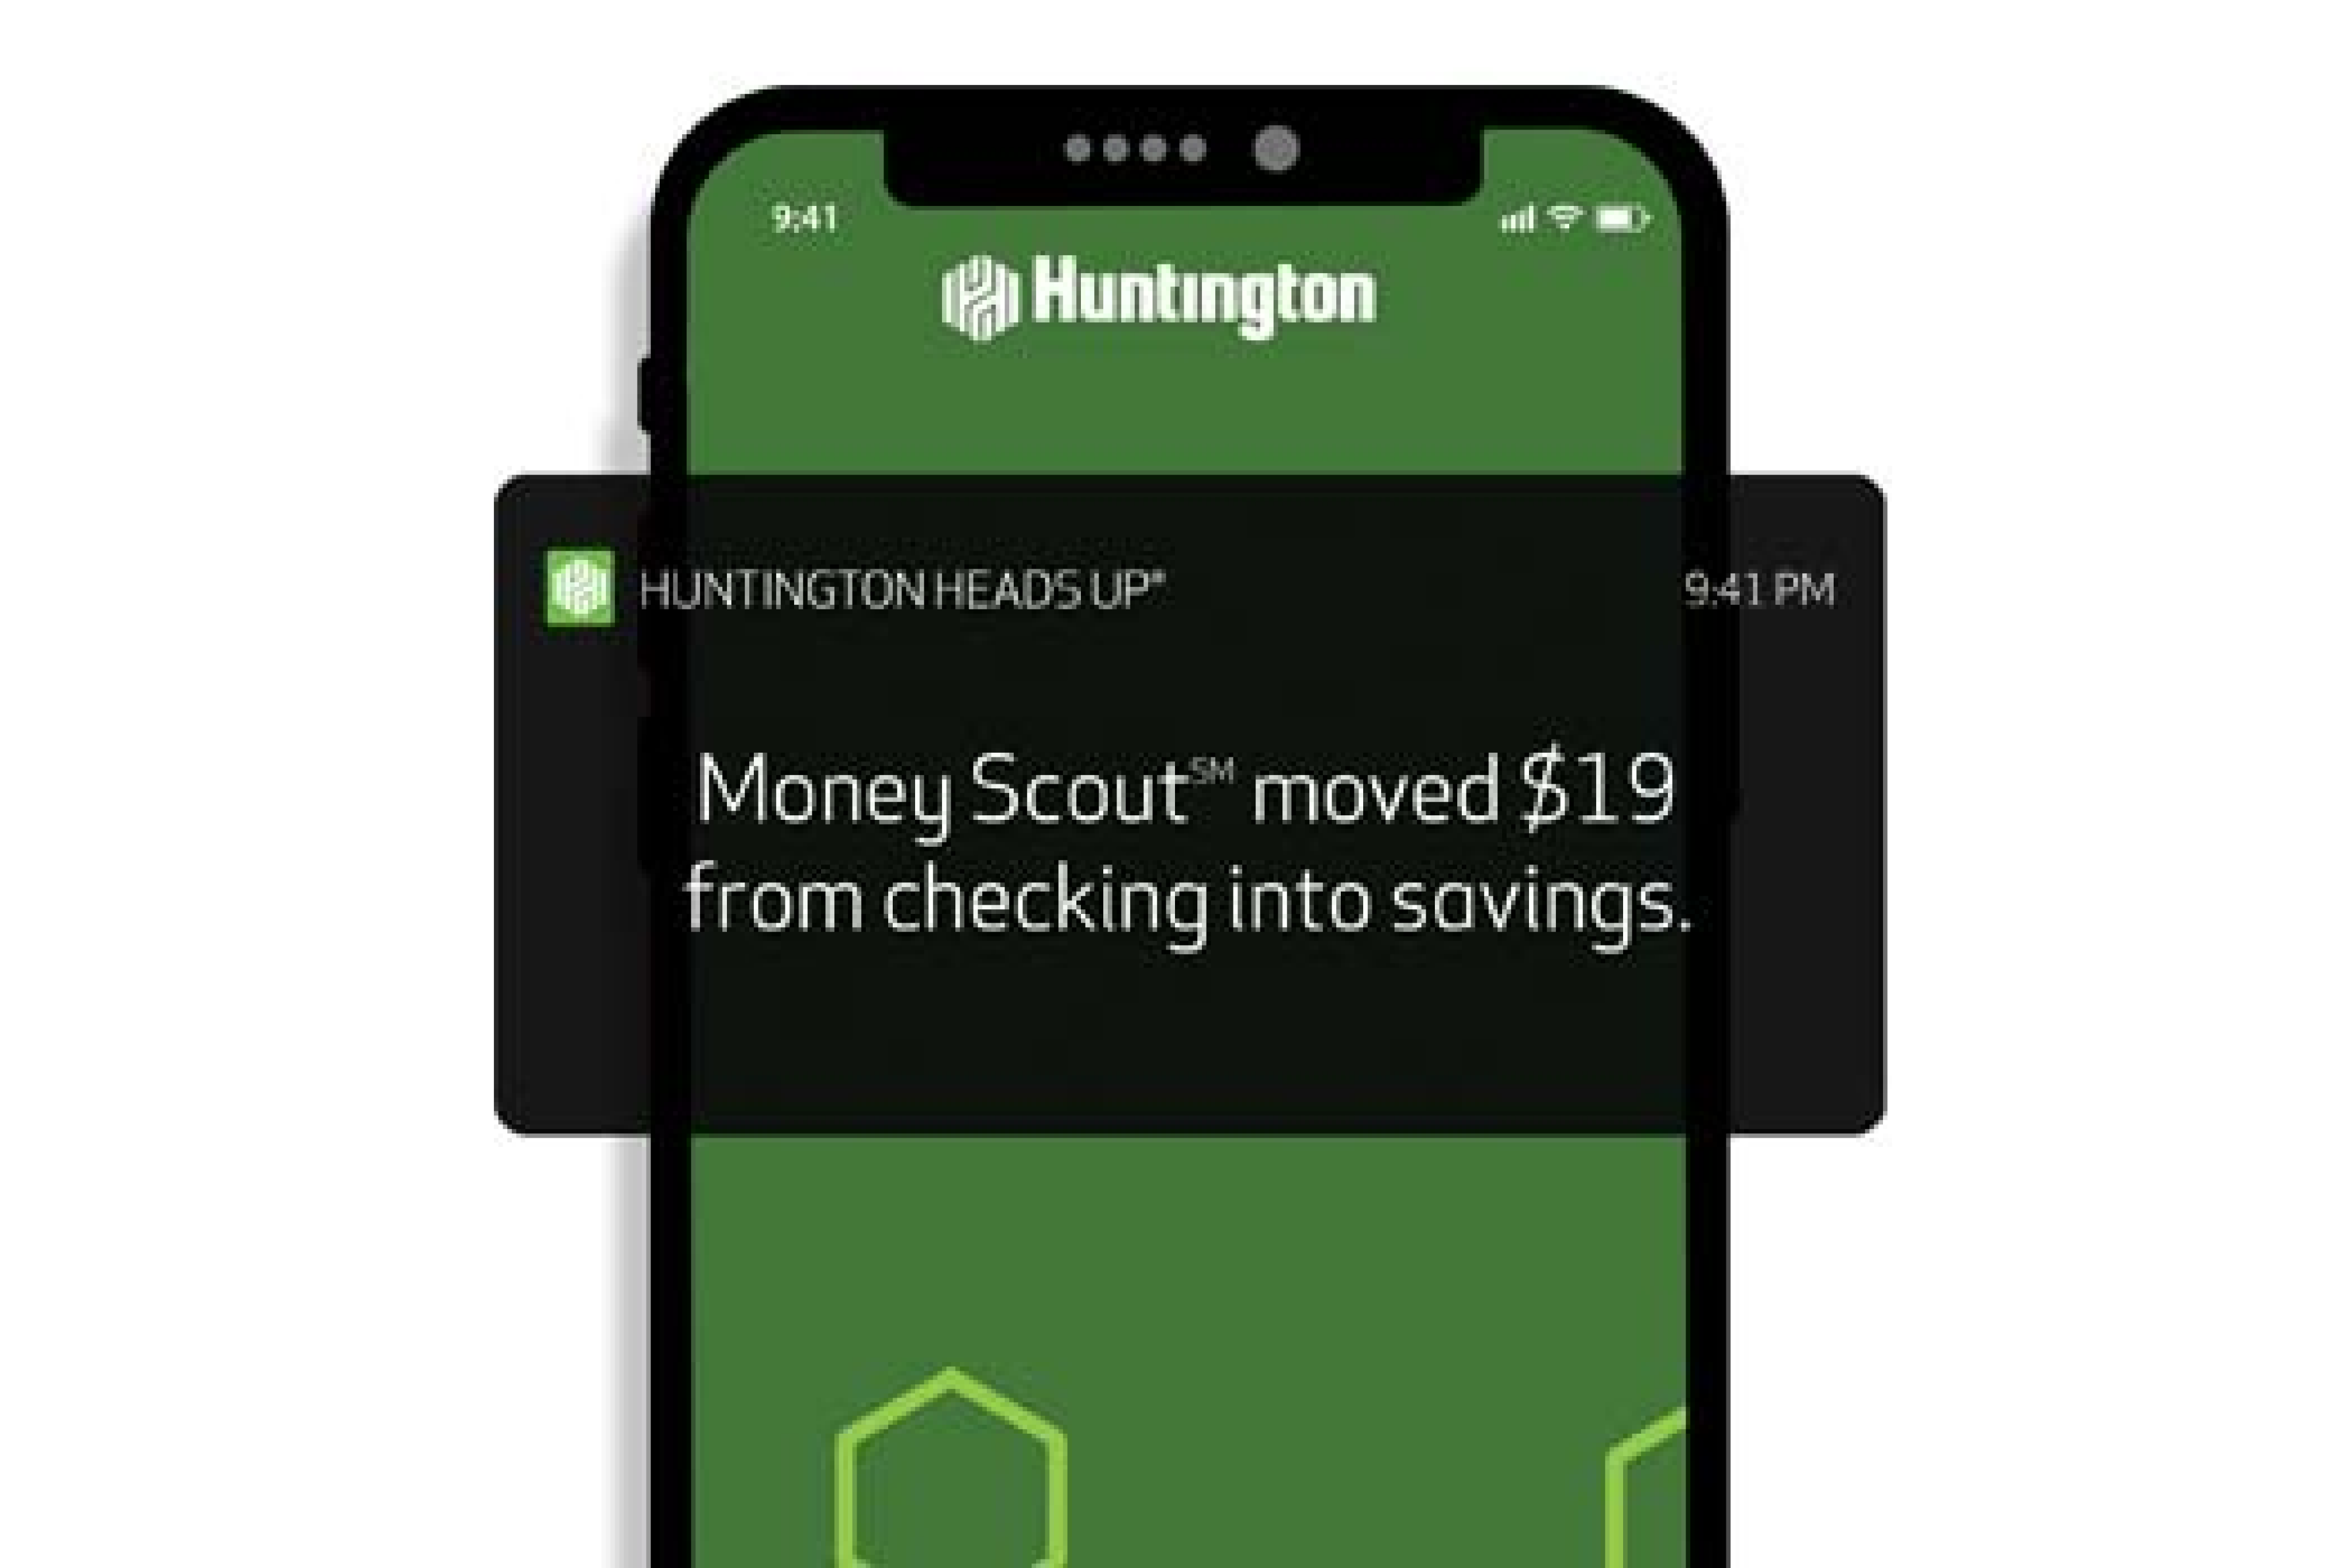 Huntington Money Scout